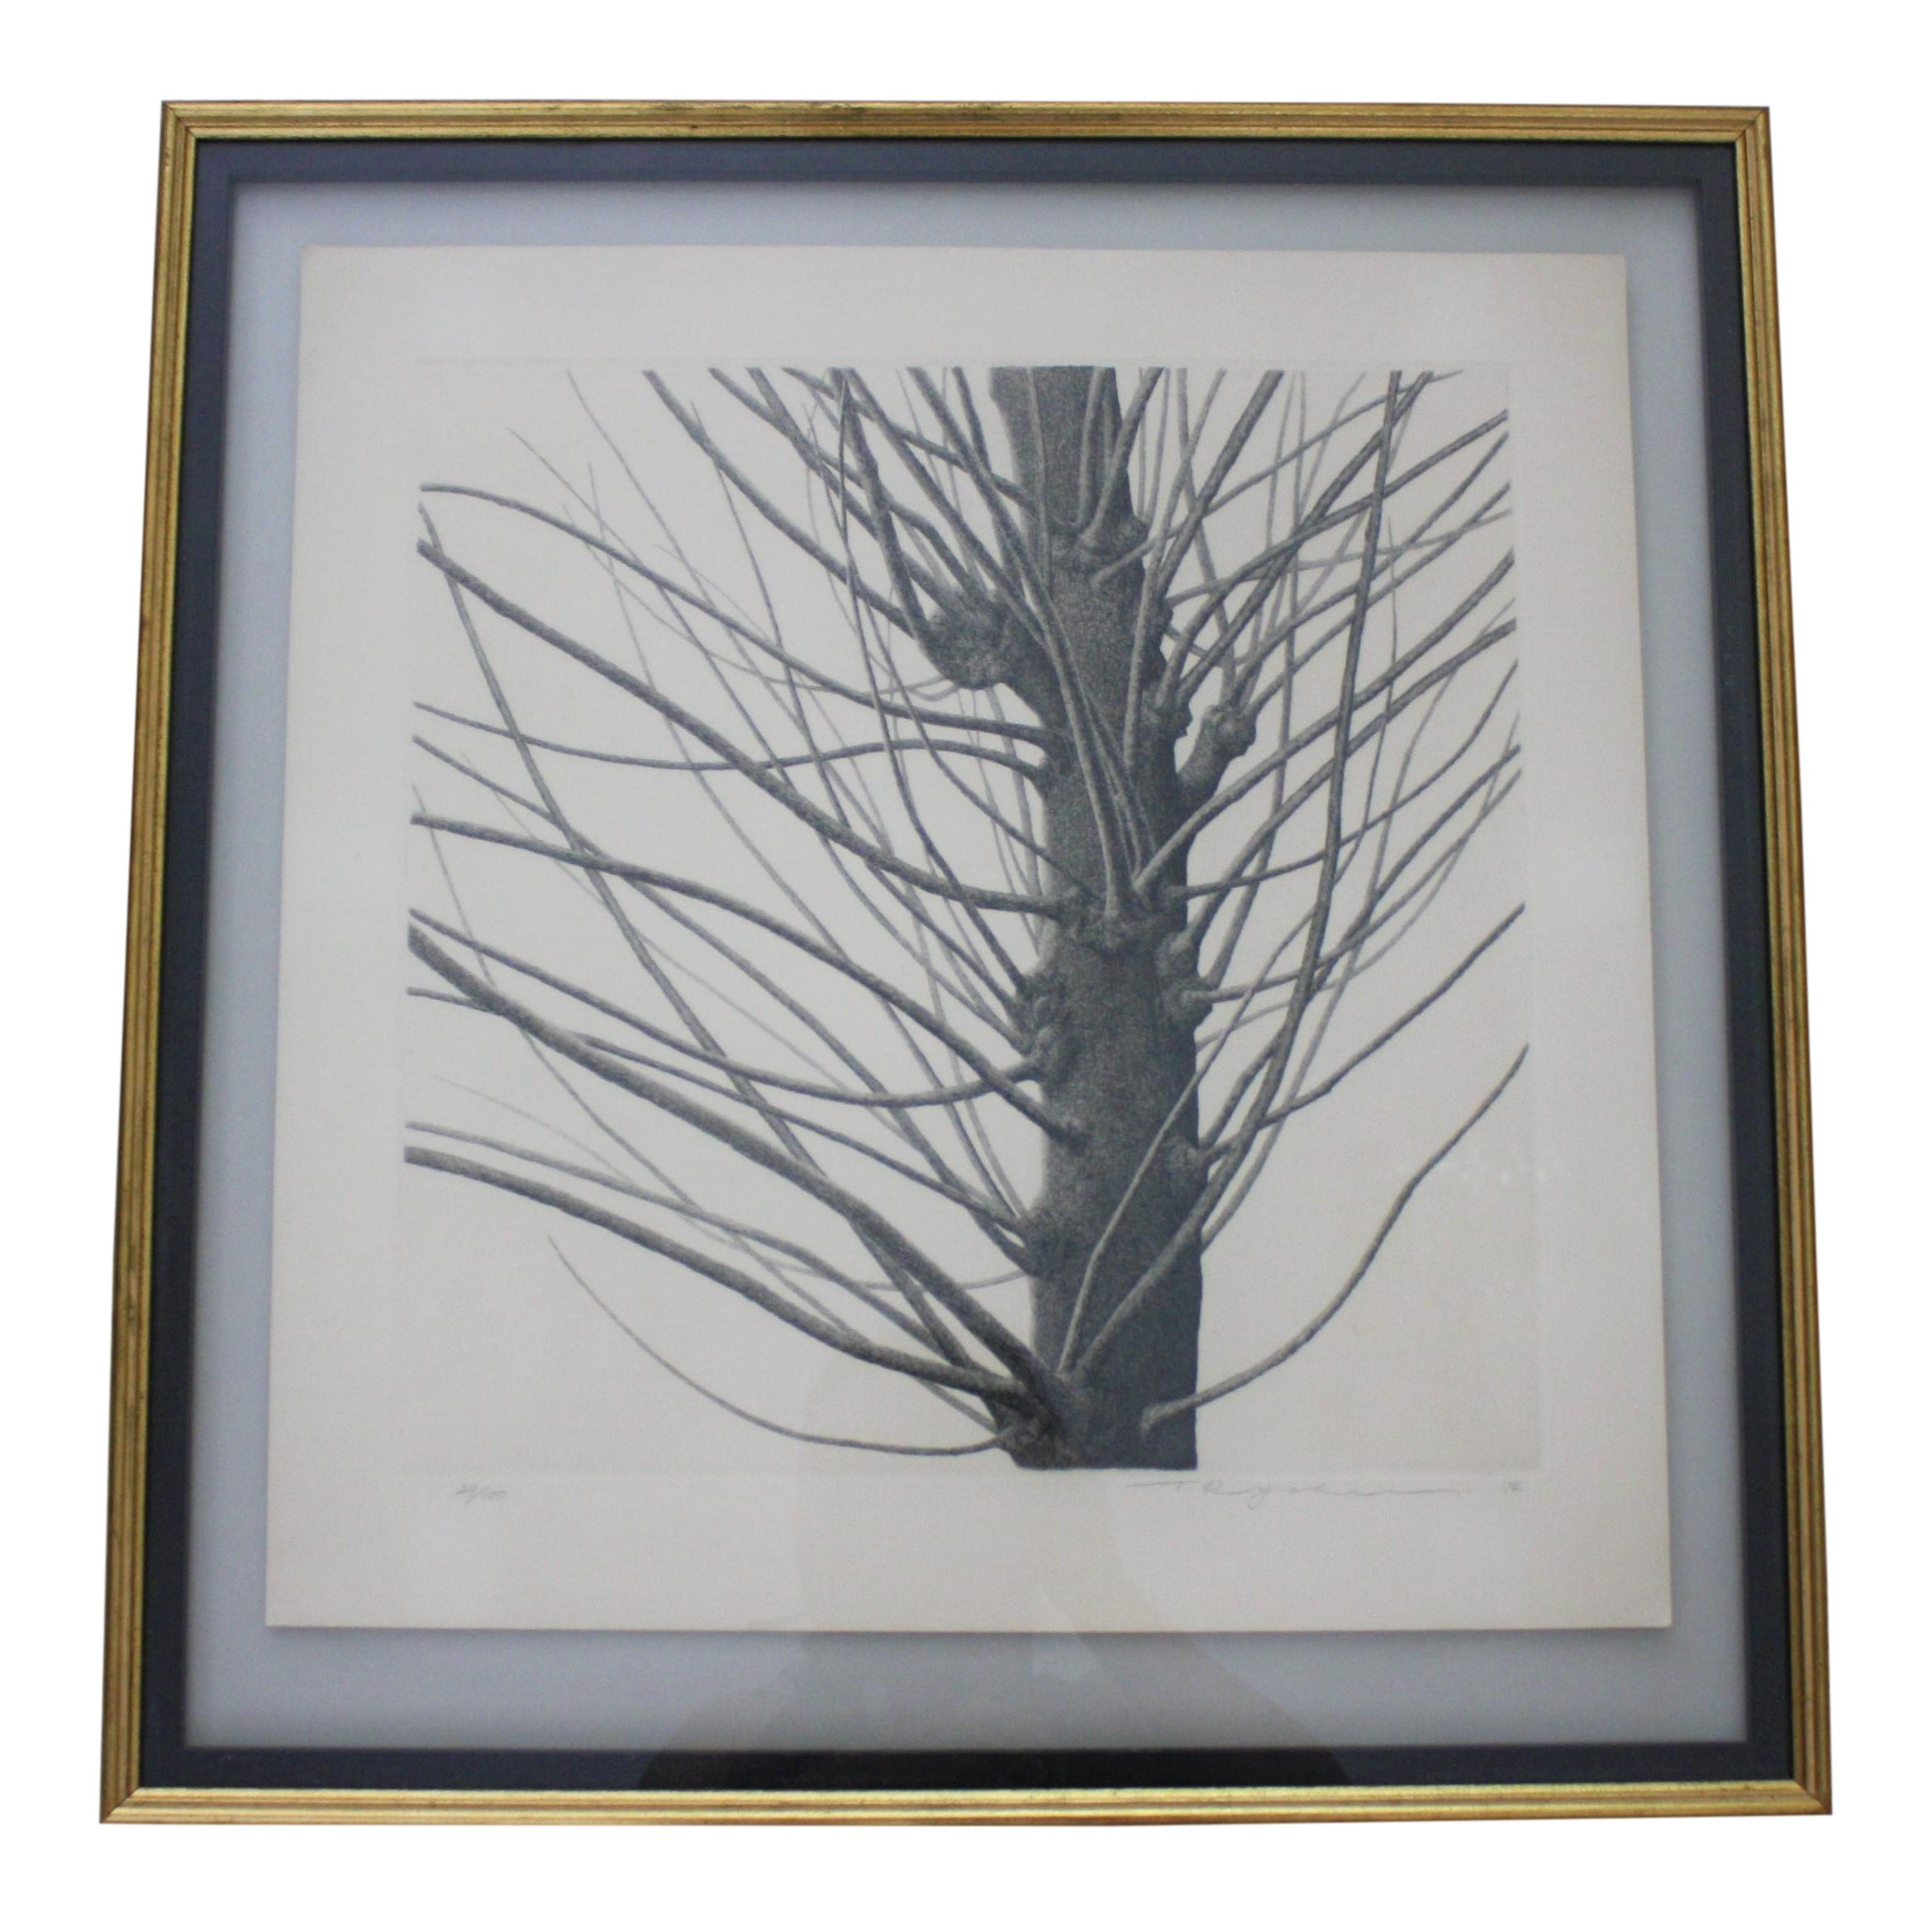 Etching drawing floral. Framed of tree by